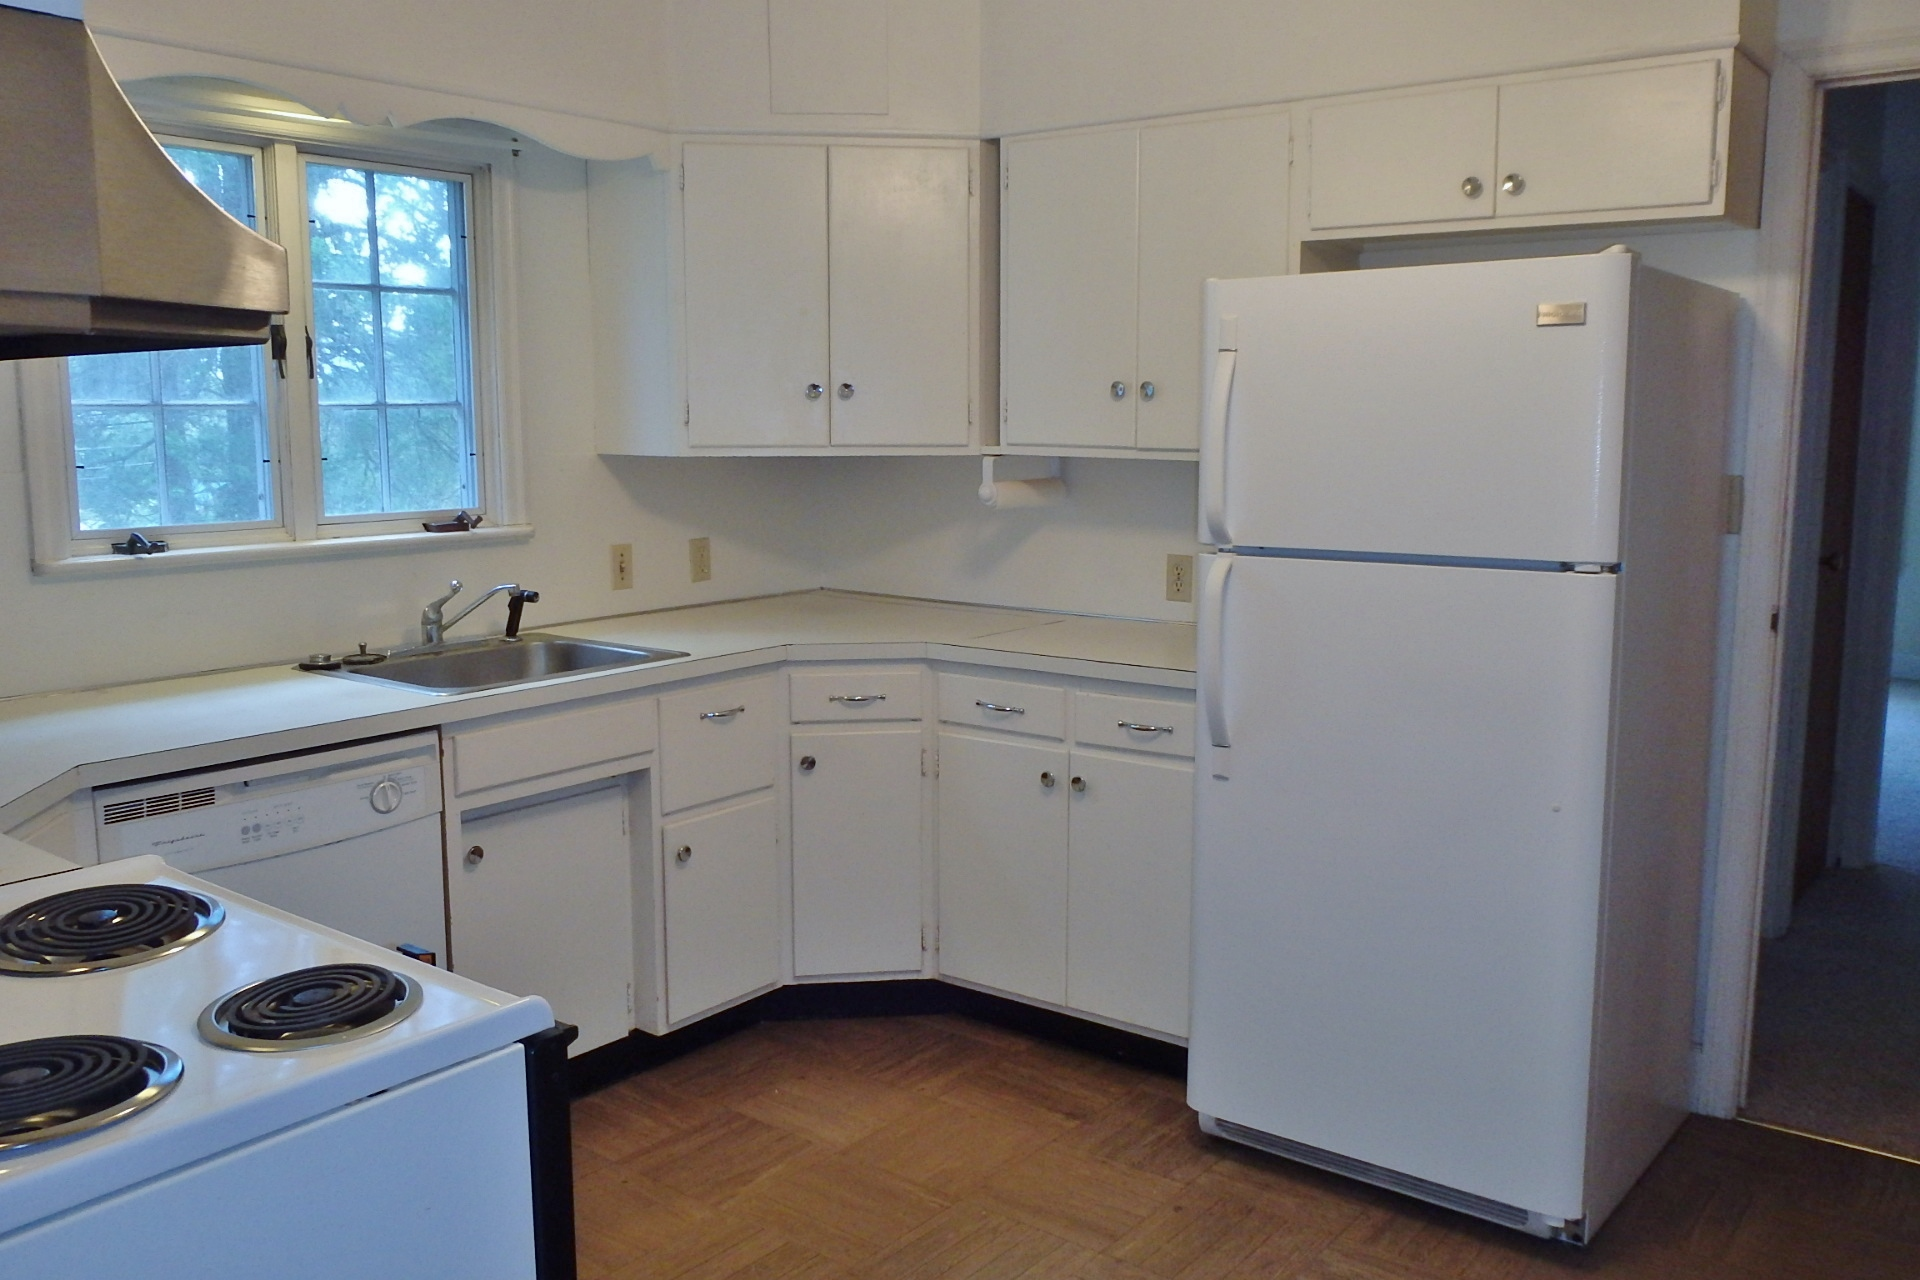 Kitchen photo of the 2-bedroom apartment for rent at 404 W. Fairmount Avenue, State College PA.